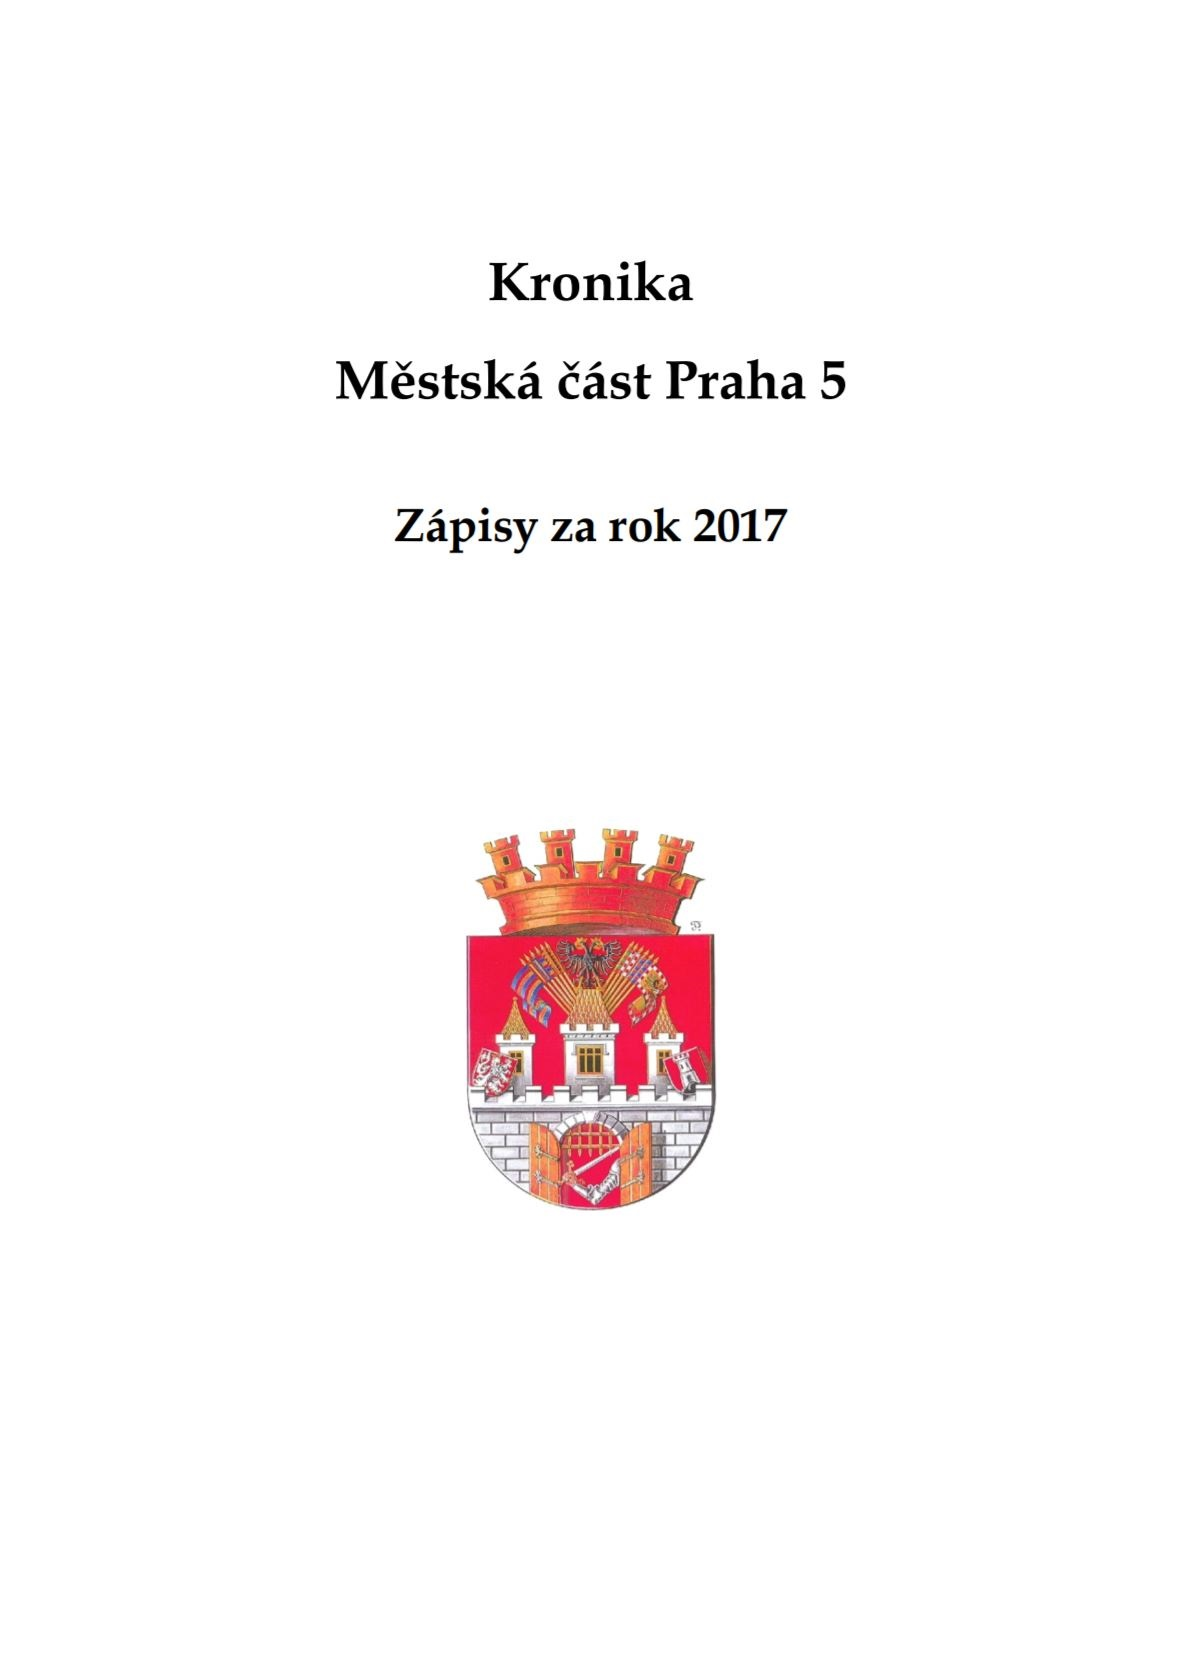 Kronika MČ Praha 5 (2017)